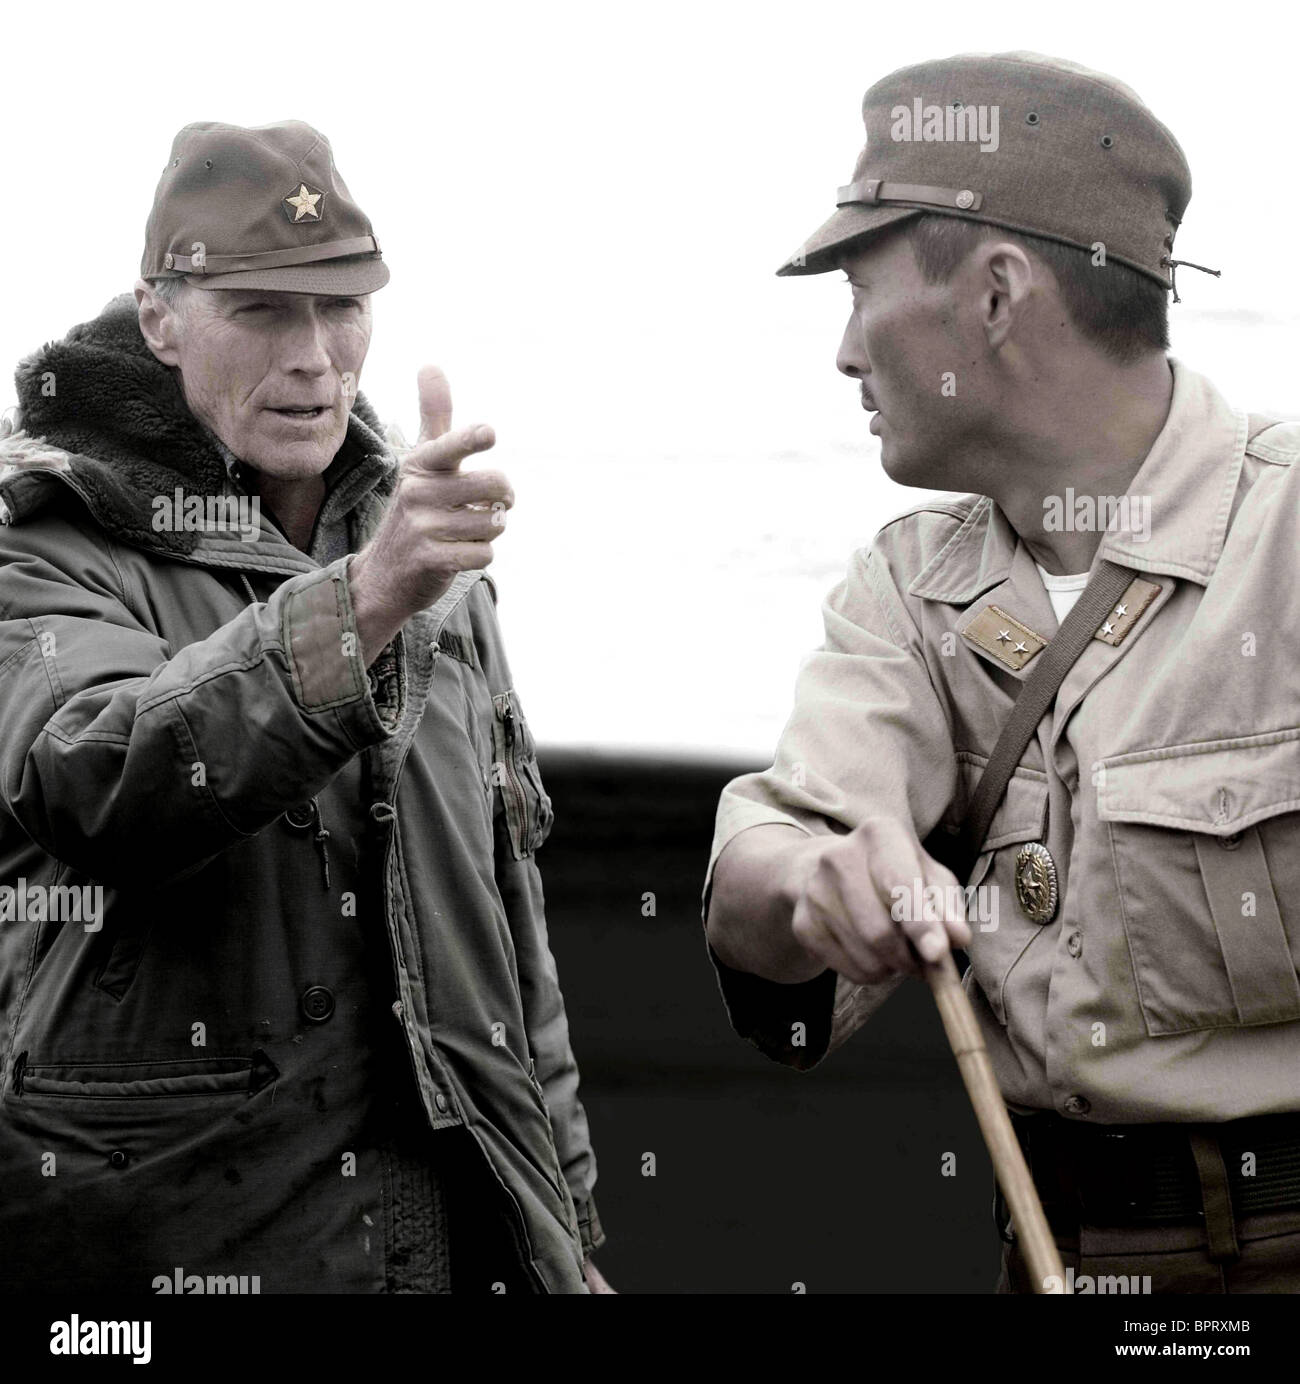 a critique of letters from iwo jima a film by clint eastwood 2007-5-5 flags of our fathers is the first of clint eastwood's diptych dealing with the battle of iwo jima (the second film, one which assumes a japanese point of view, is scheduled for a february 2007 release.